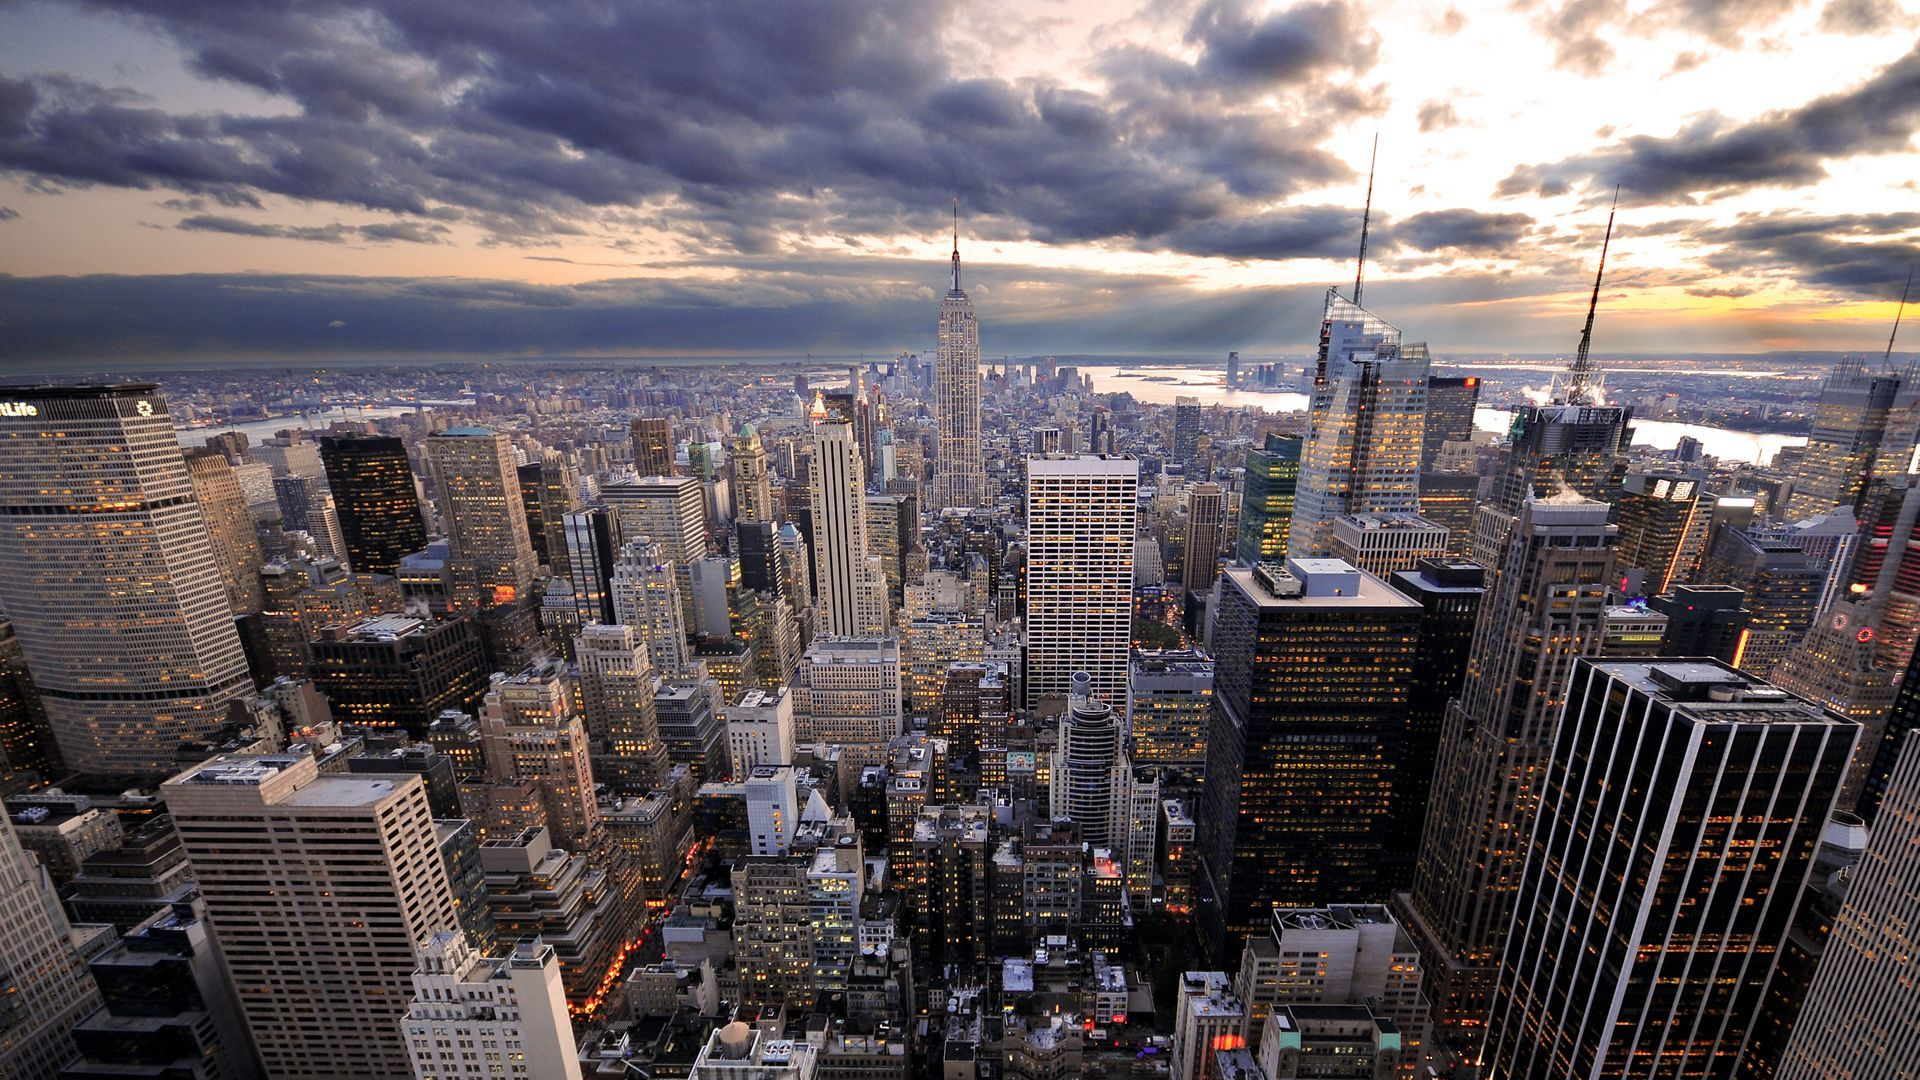 Buildings City New York City Citta Skyline Skyline Della Citta